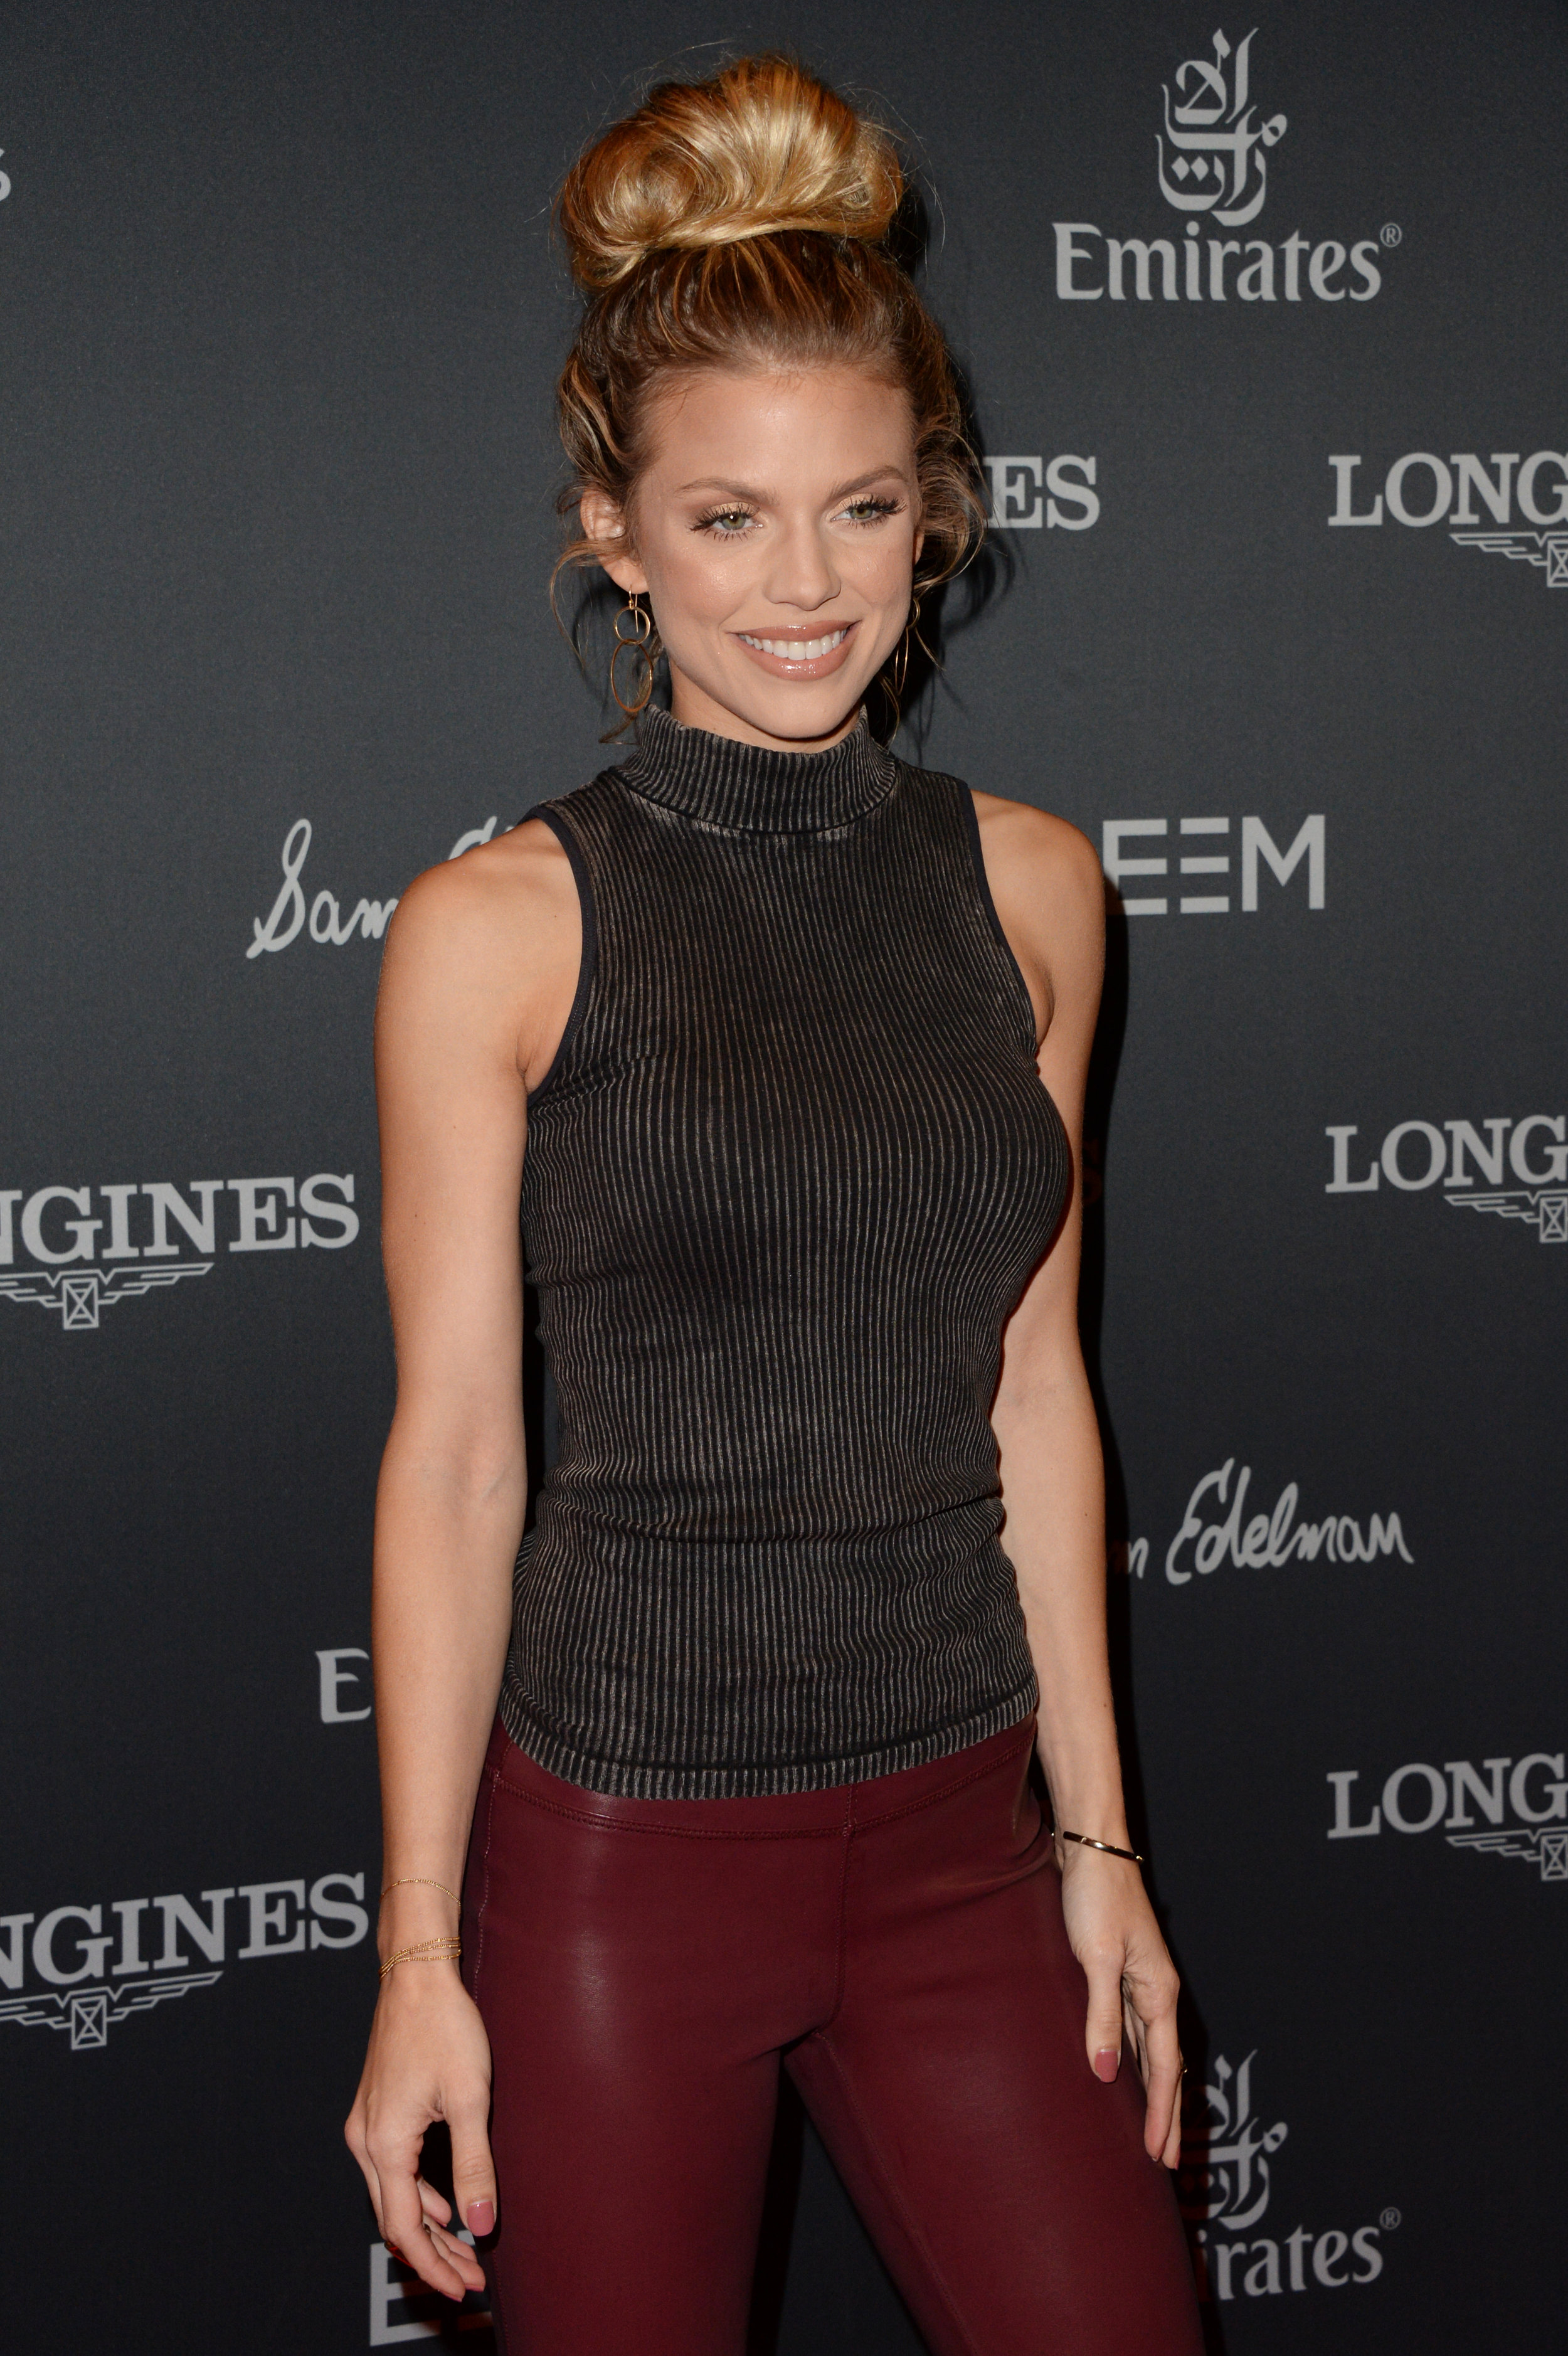 AnnaLynne McCord at the Longines Masters in Los Angeles